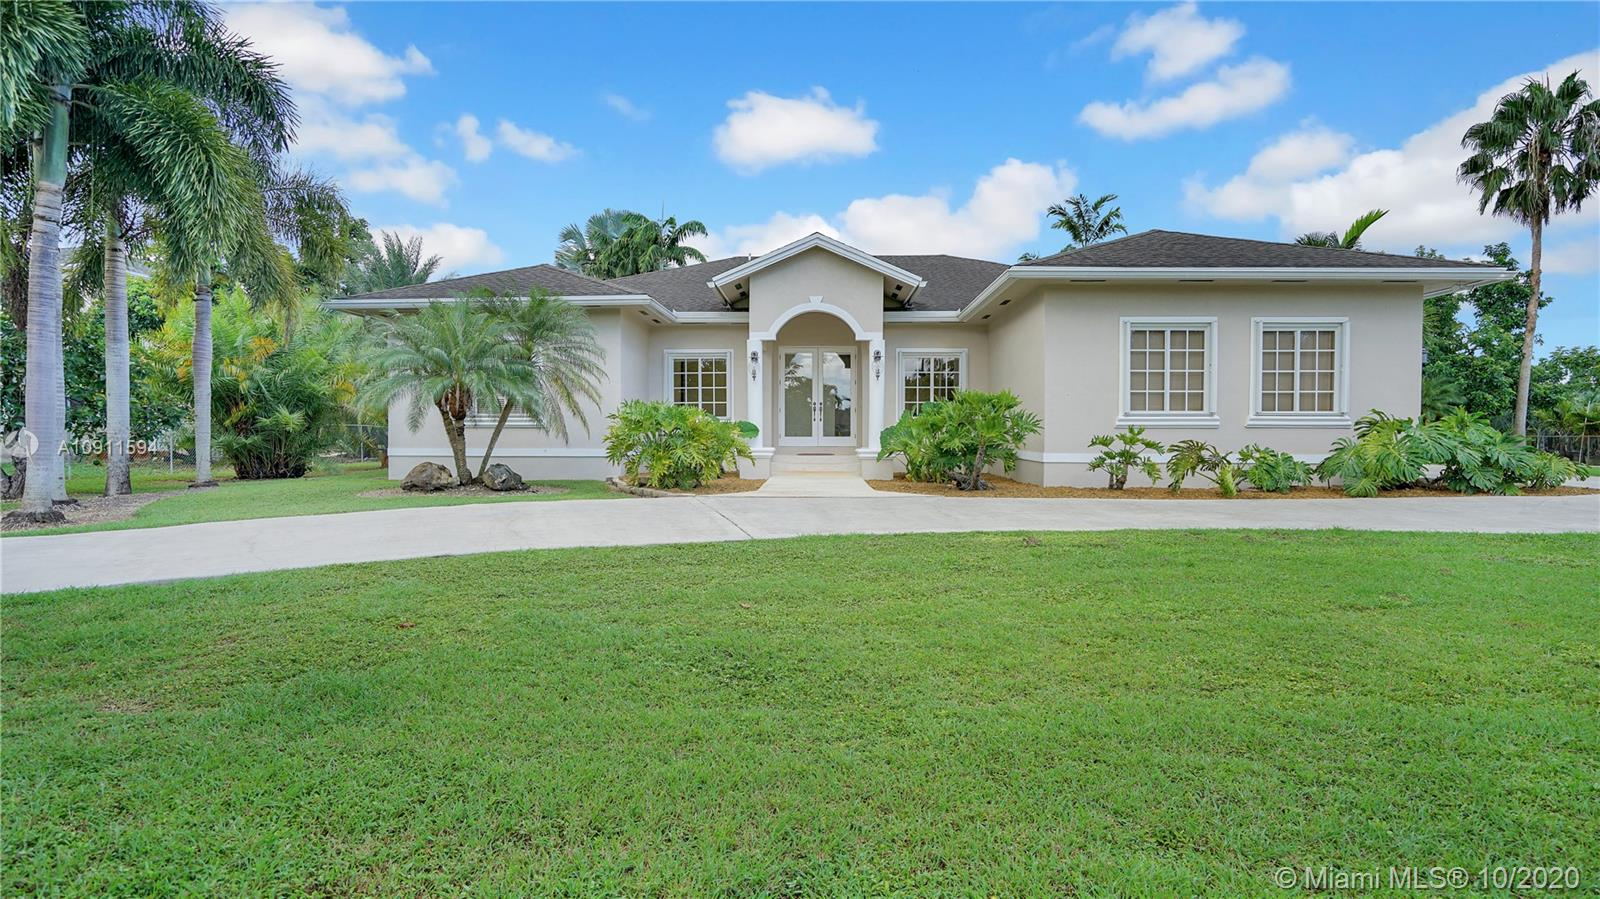 15901 SW 250 ST Property Photo - Homestead, FL real estate listing